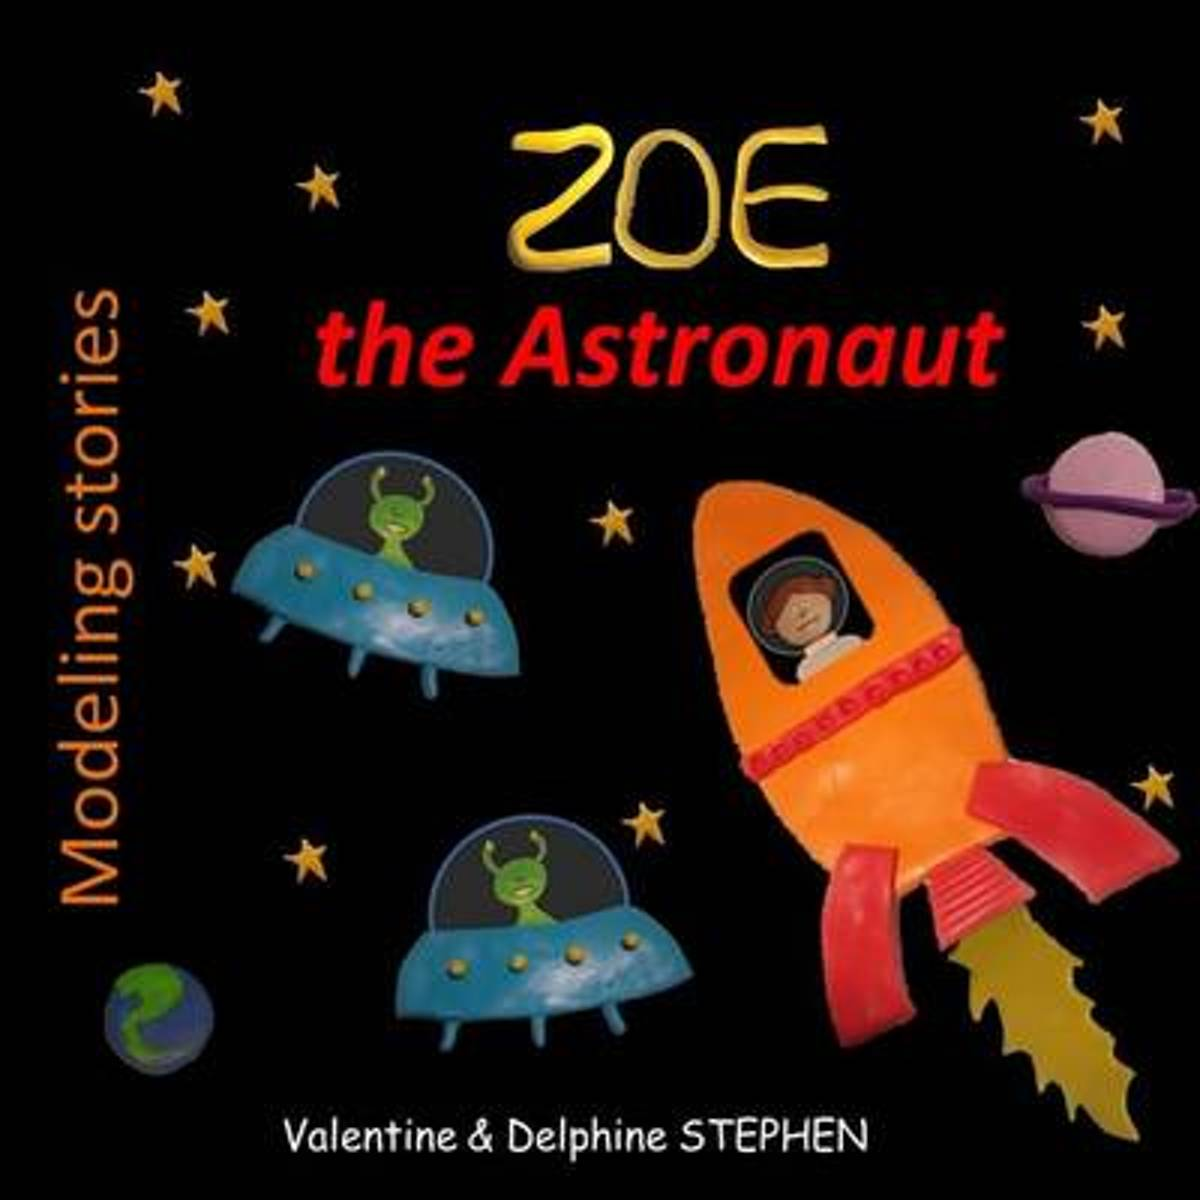 Zoe the Astronaut image